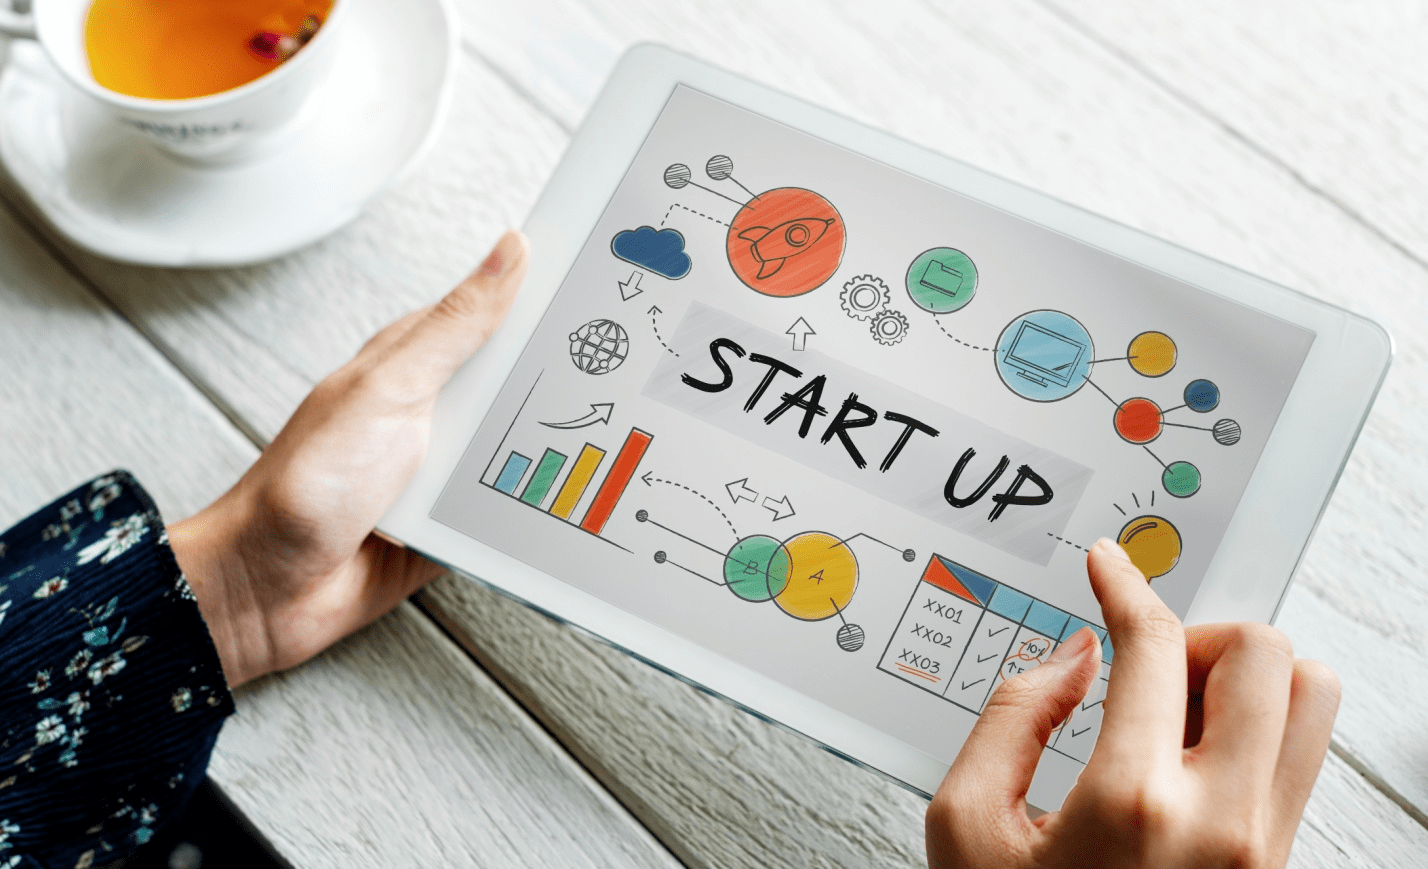 Tech trends for today's startups